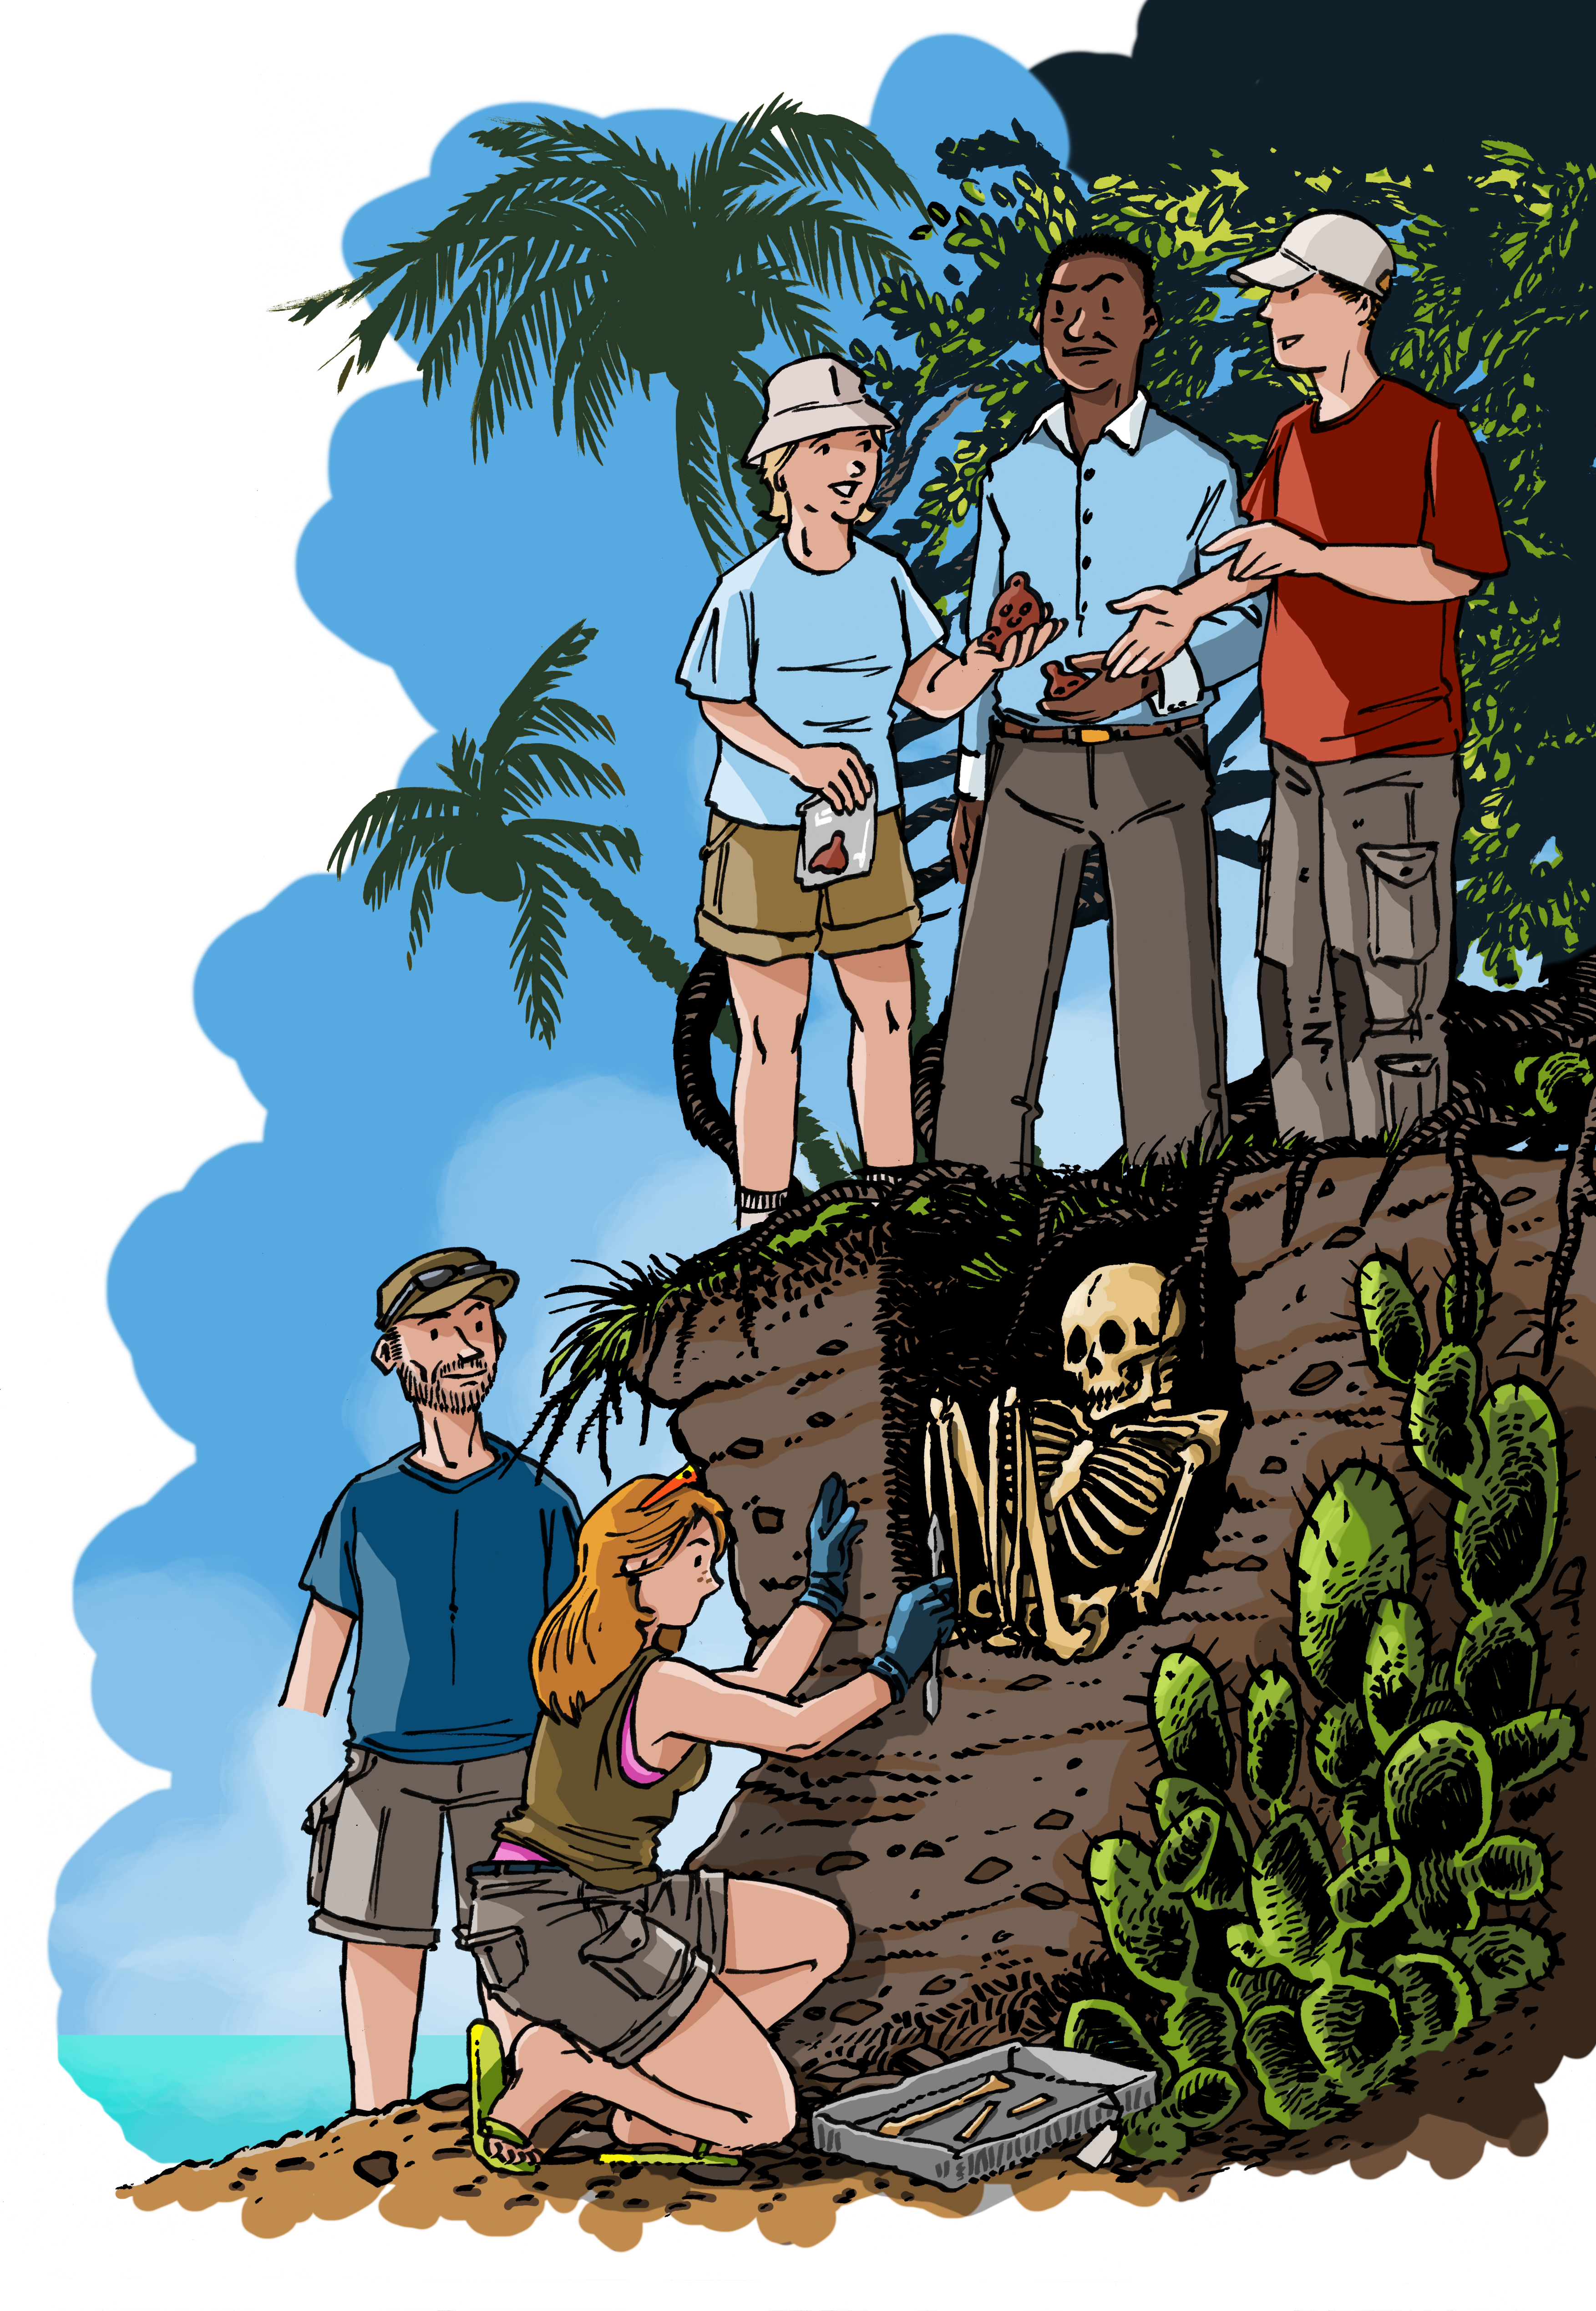 Slave clipart field work. Free cliparts download clip